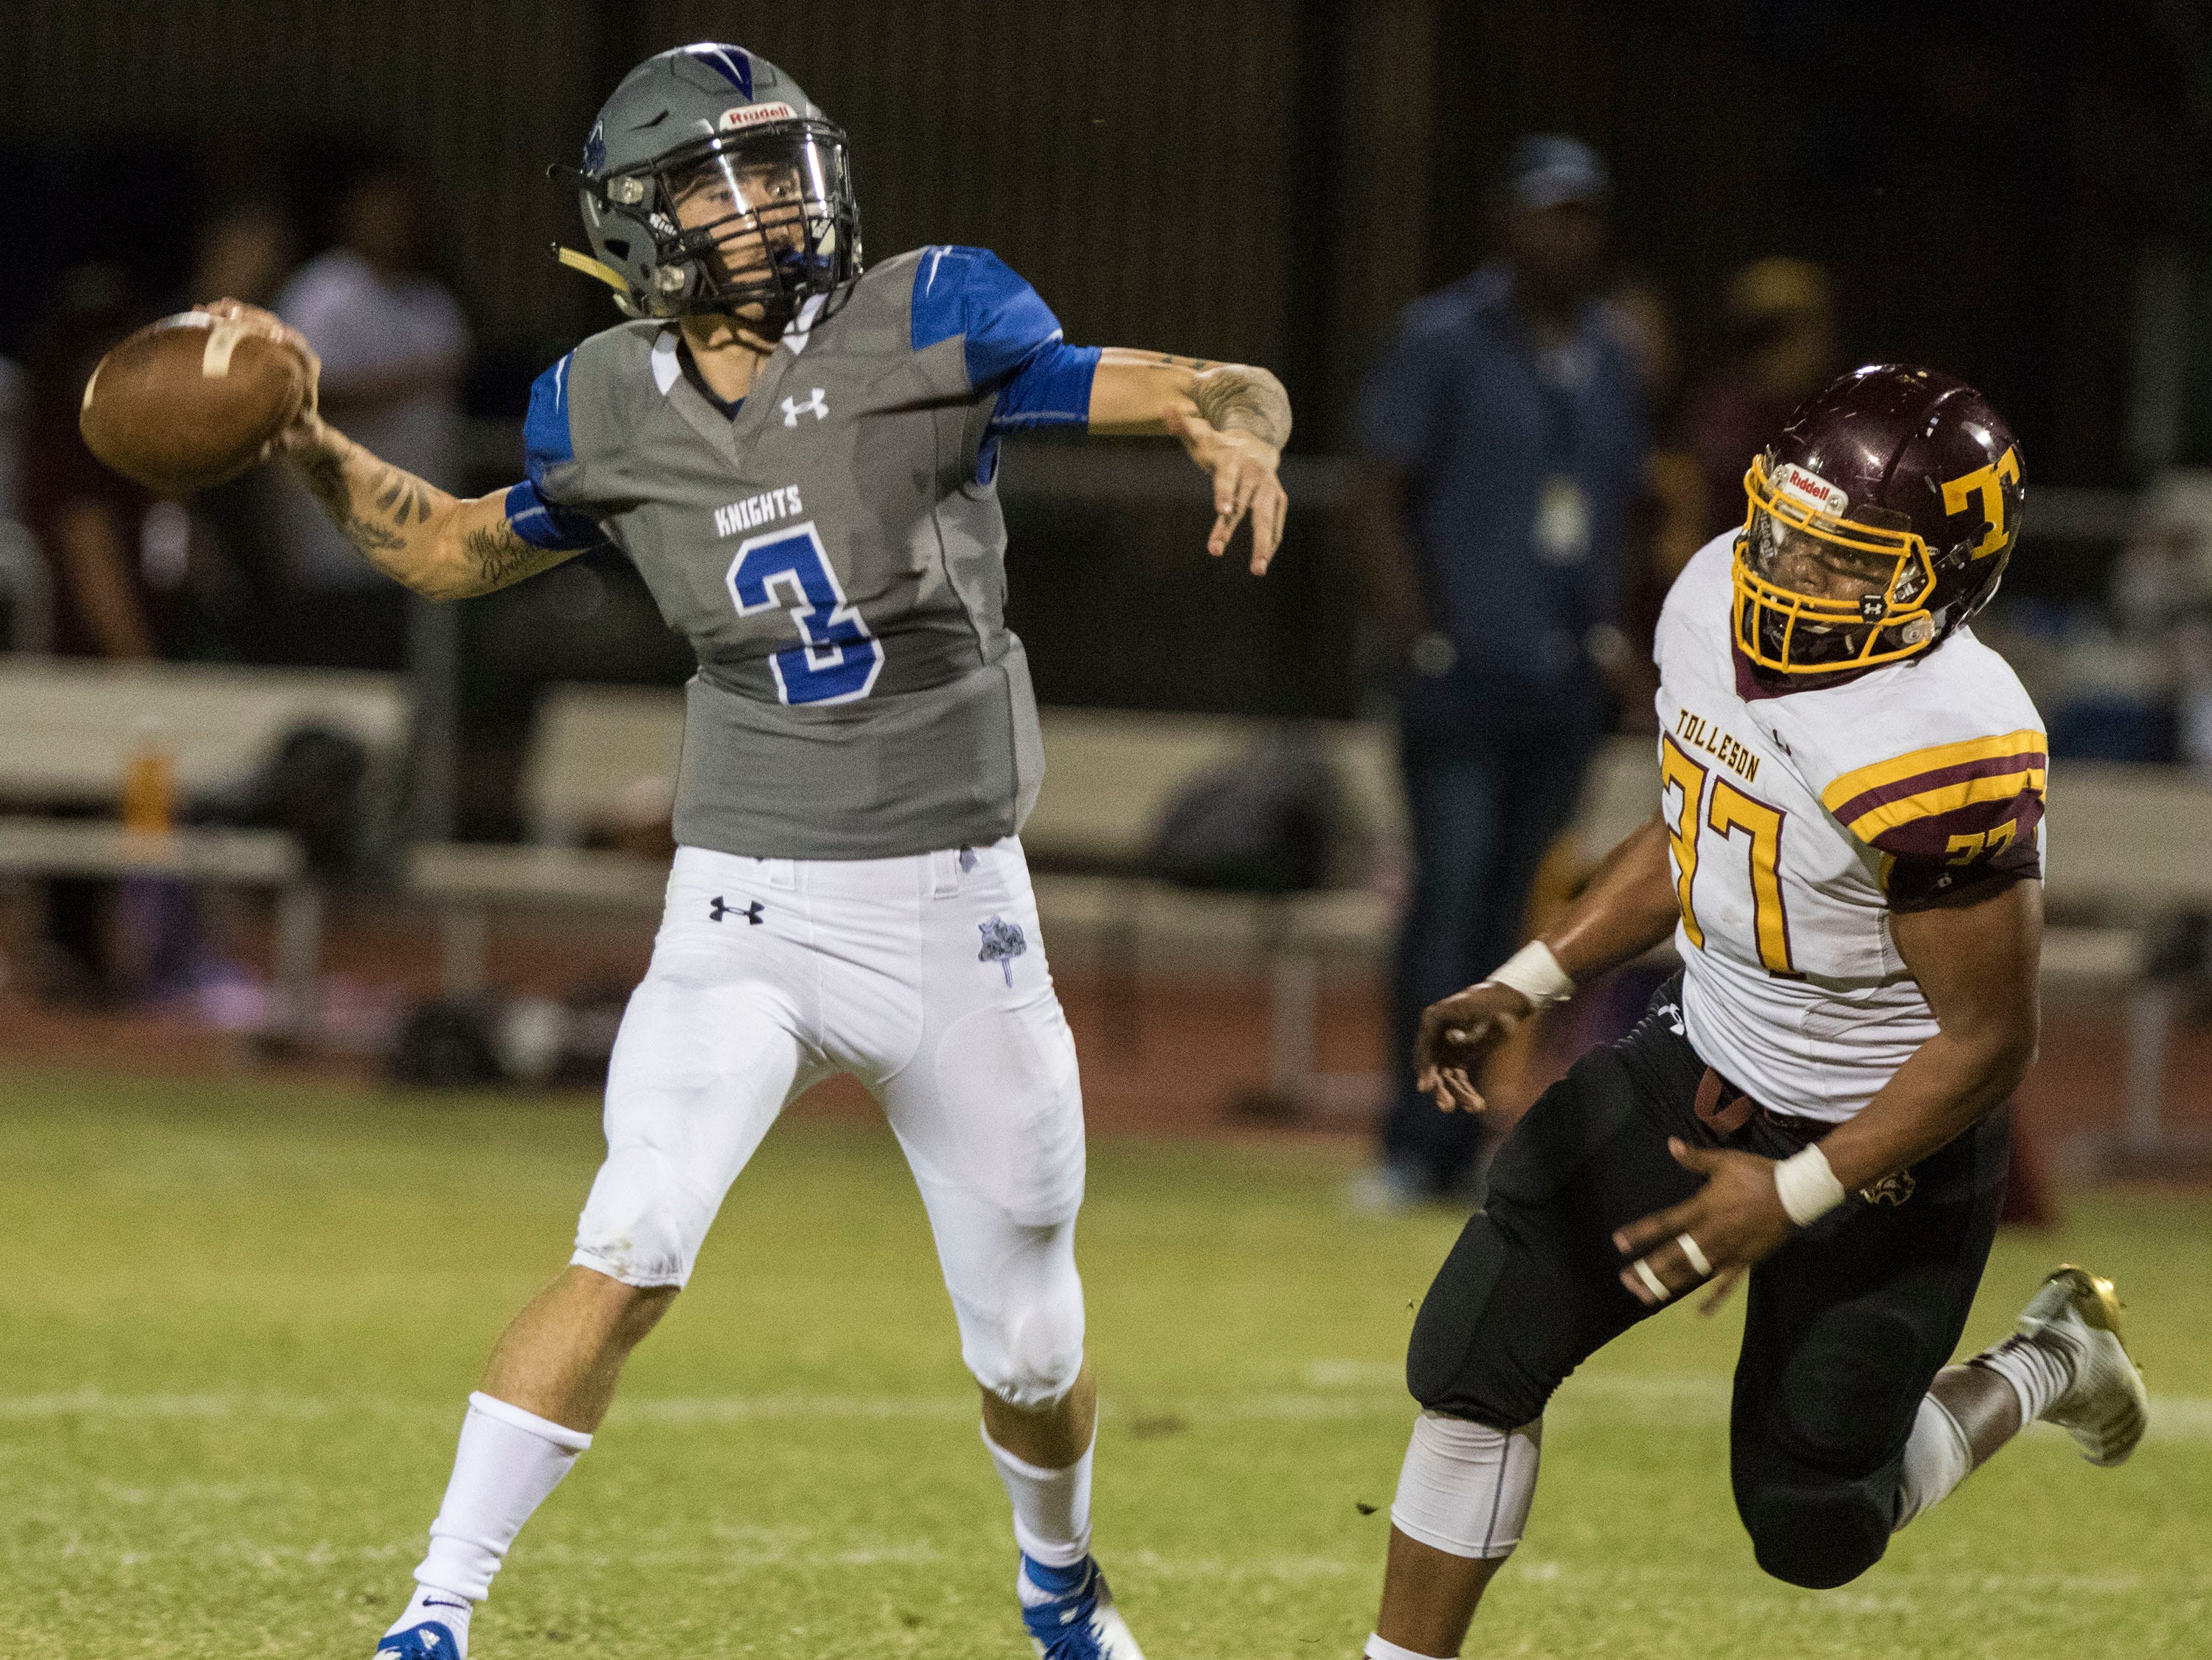 Westview's Chase Pope looks for a reciever as Tolleson's Nicholas Landing closes in on him during their game in Avondale Friday, Sept. 28, 2018. #azhsfb